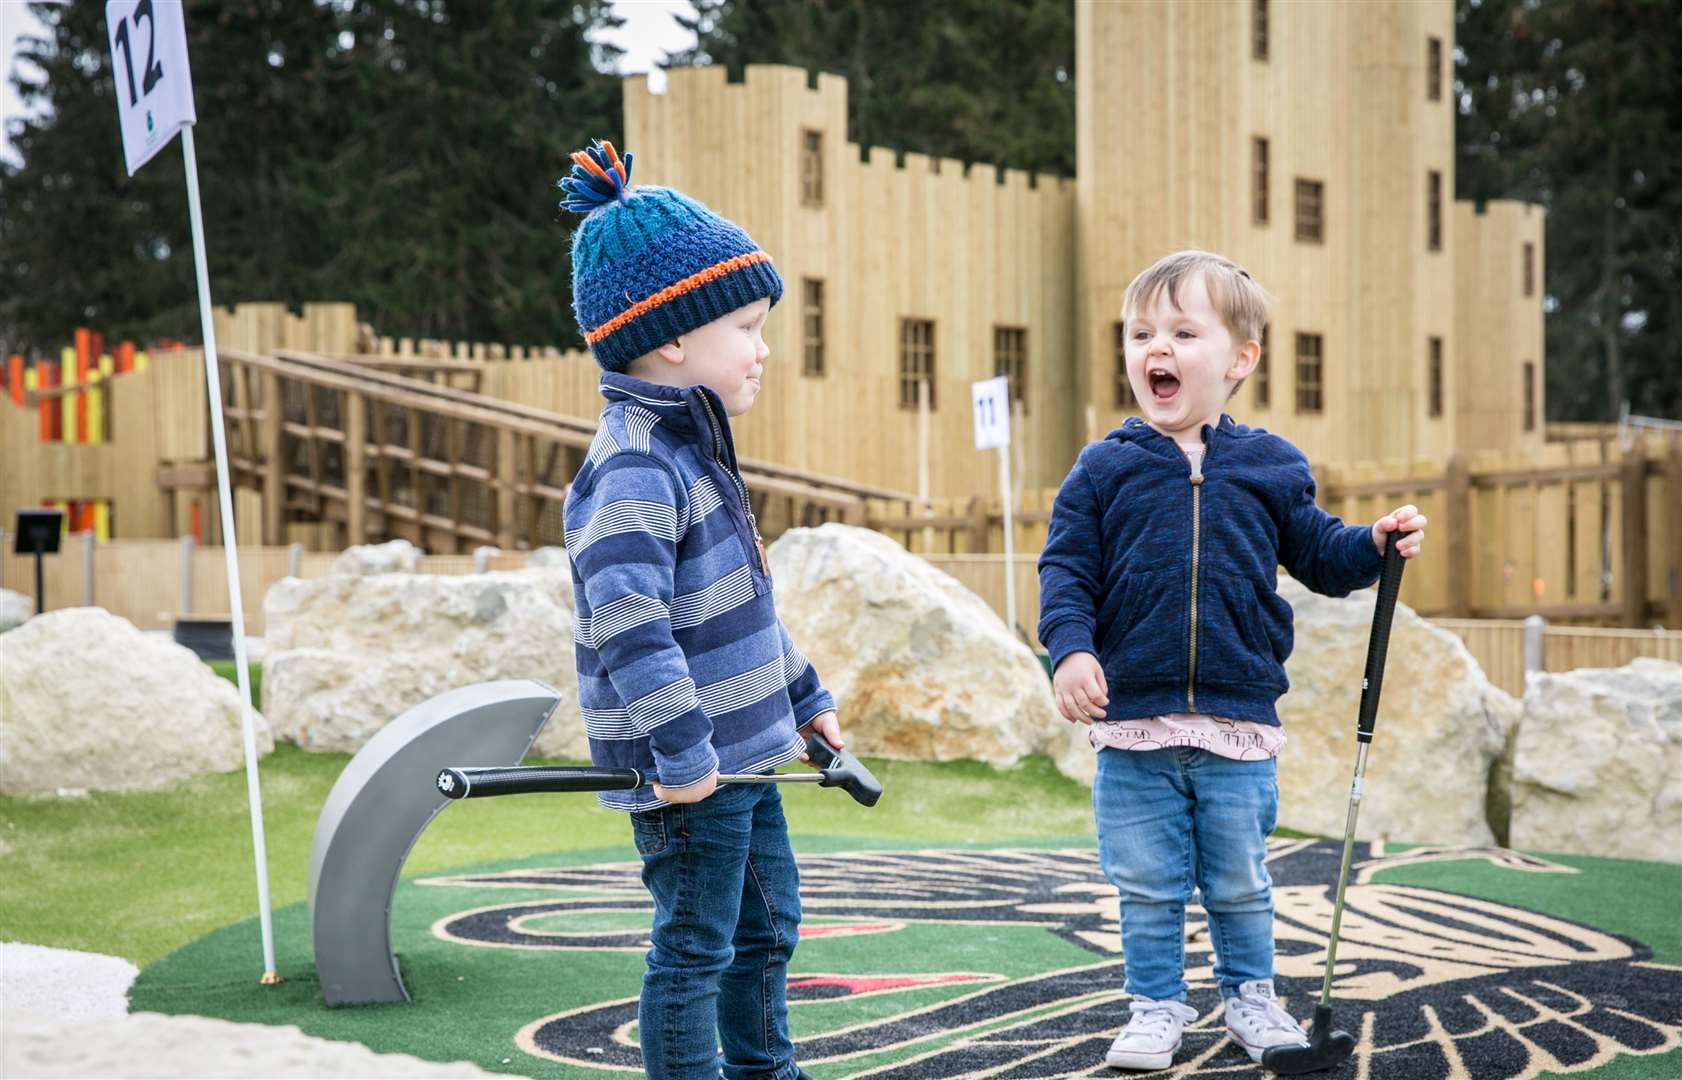 Adventure Golf at Leeds Castle. Picture: www.matthewwalkerphotography.com